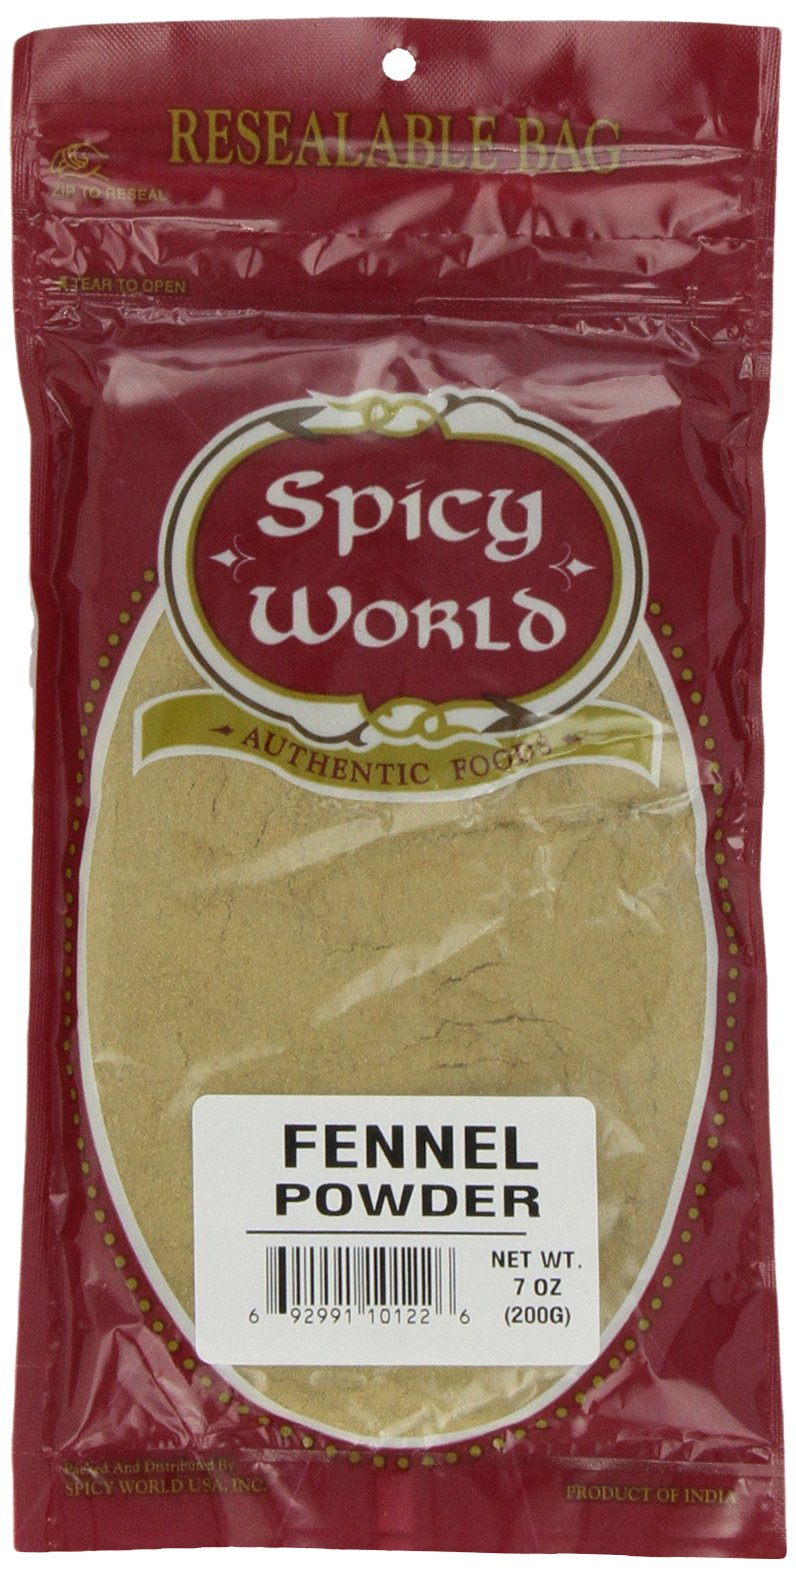 Spicy World Fennel Powder, 7-Ounce Pouches (Pack of 6)